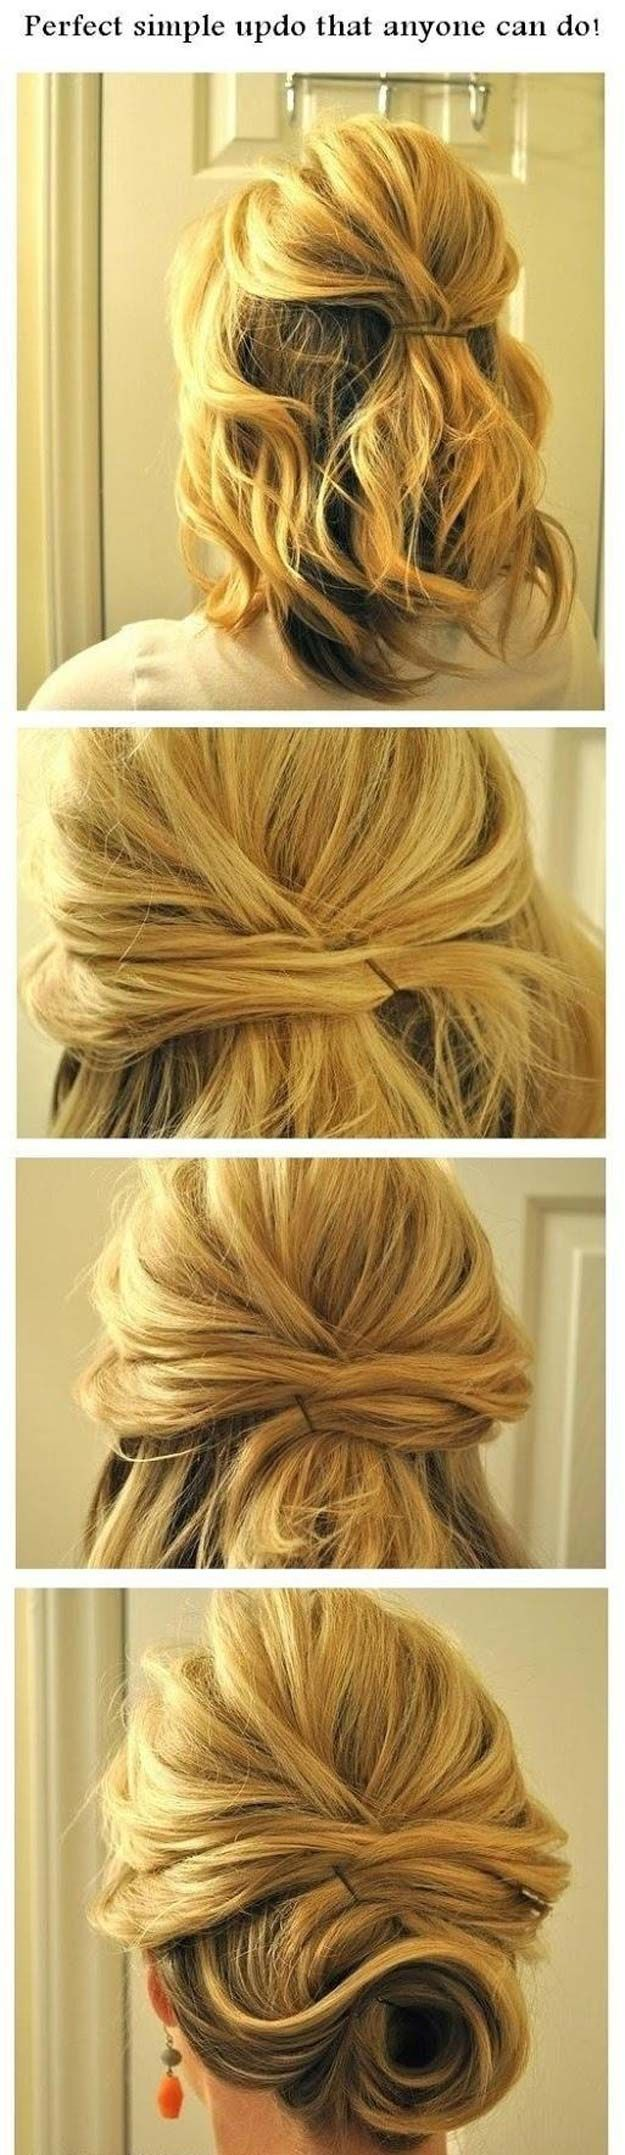 The 48 Best Medium-Length Hairstyles to Steal For Yourself - Perfect Simple Updo - The Best Medium-Length Hairstyles and Haircuts For Thick Hair. These Tutorials Are For Women Looking For An Easy Undo or A Hair Style With Bangs Or With Layers. Check Out The Tutorials On Long Bobs Or For Curly and Fine Hair. These Medium-Length Hairstyles and Haircuts Will Work For Round Faces As Well. Try These If You Have Blonde Hair, Brunette Hair, Just Got Highlights Or A Balayage…